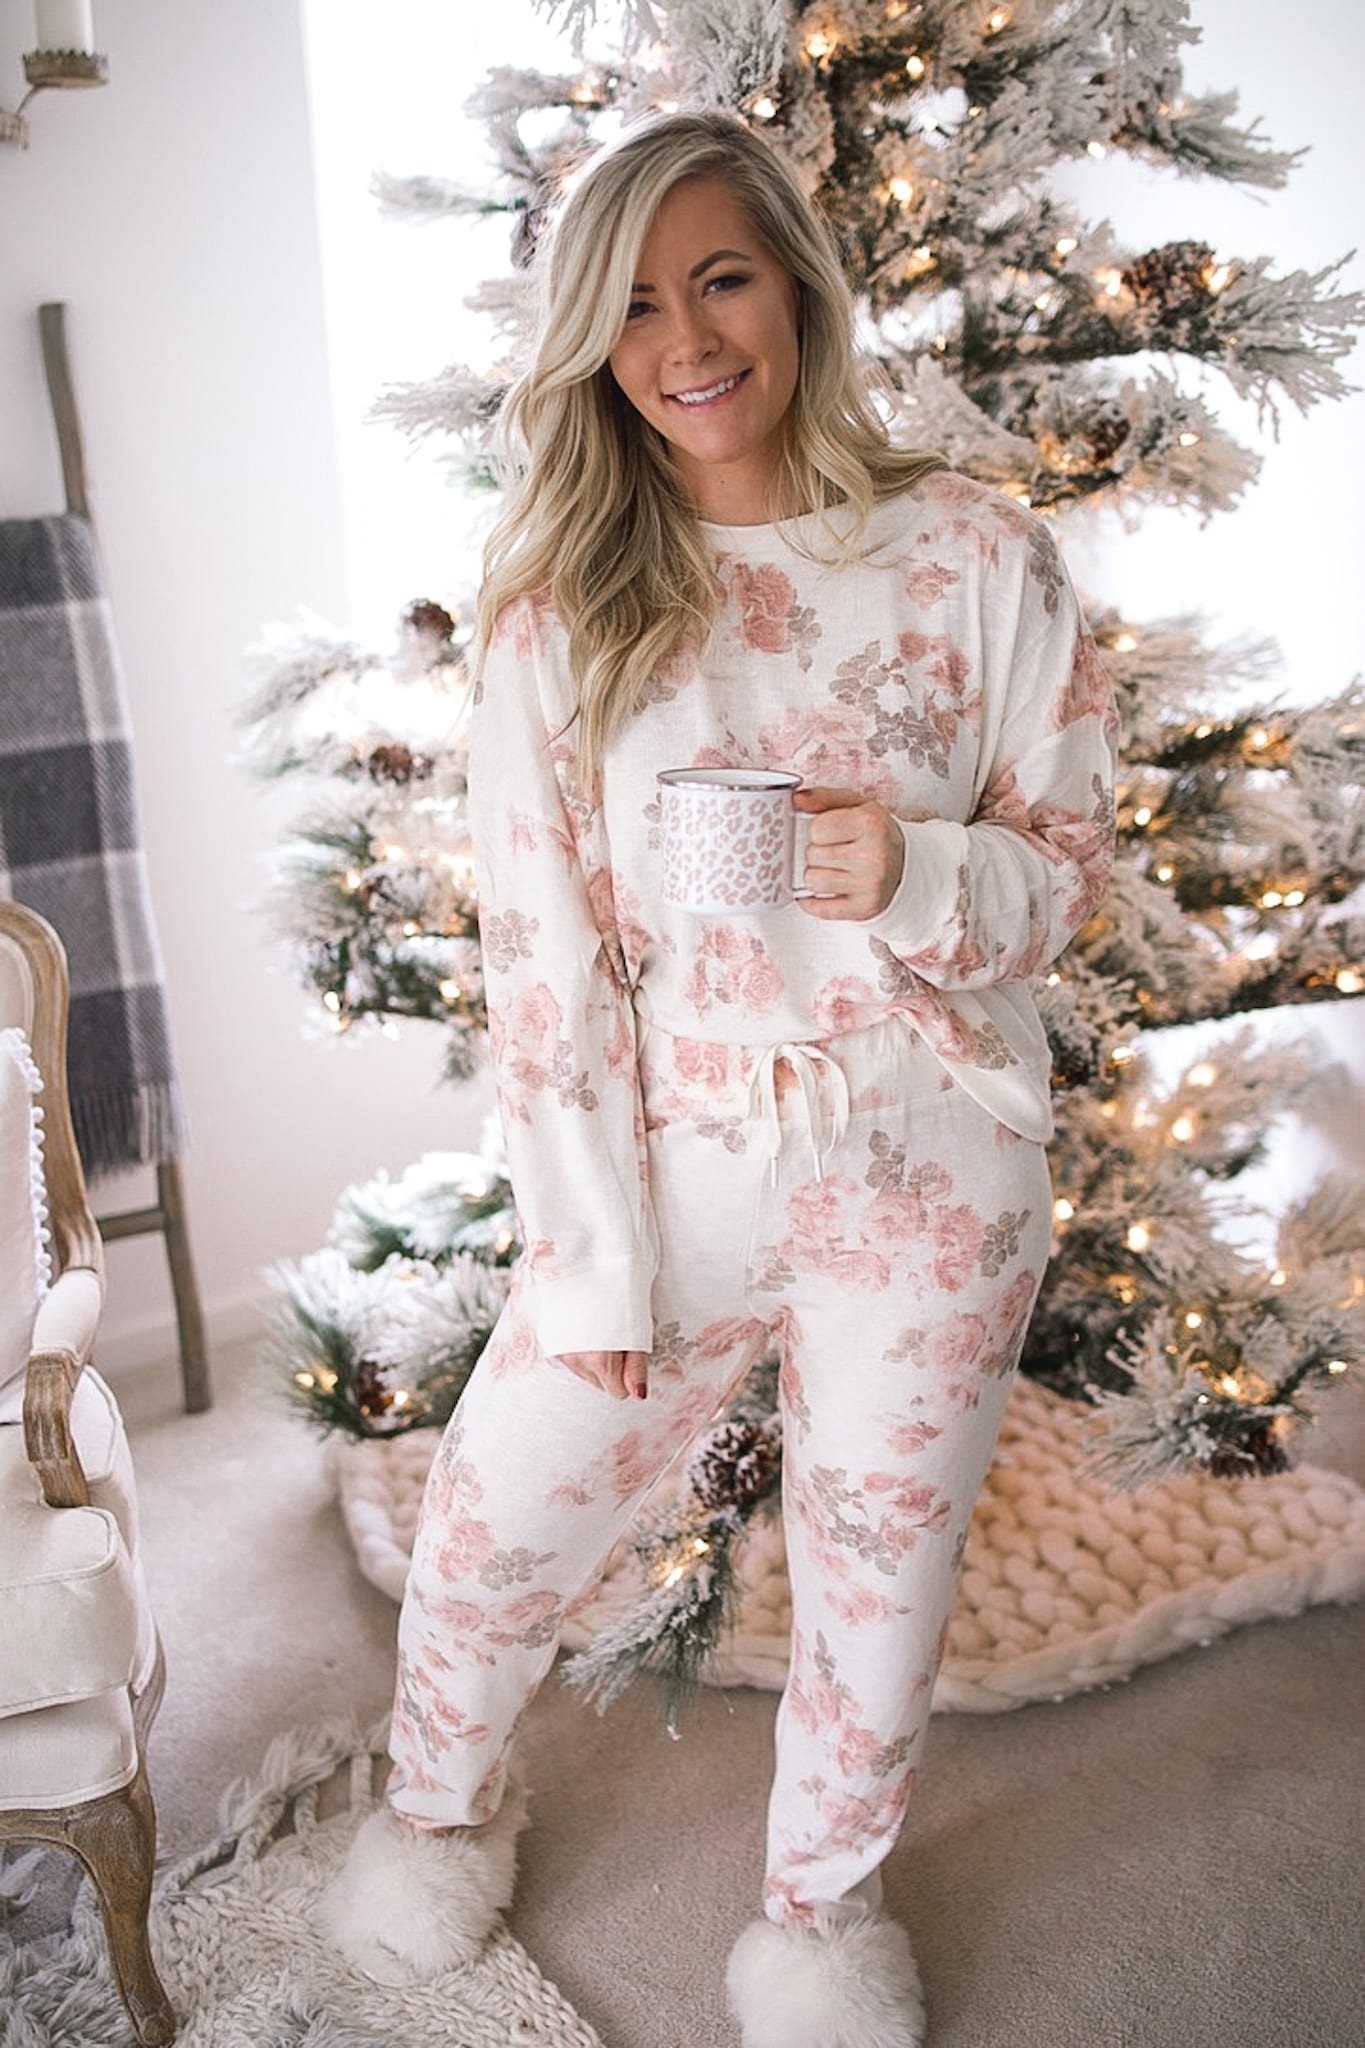 Santa Baby, Hurry Down the Chimney with my Holiday Wish List (that is on Sale!)